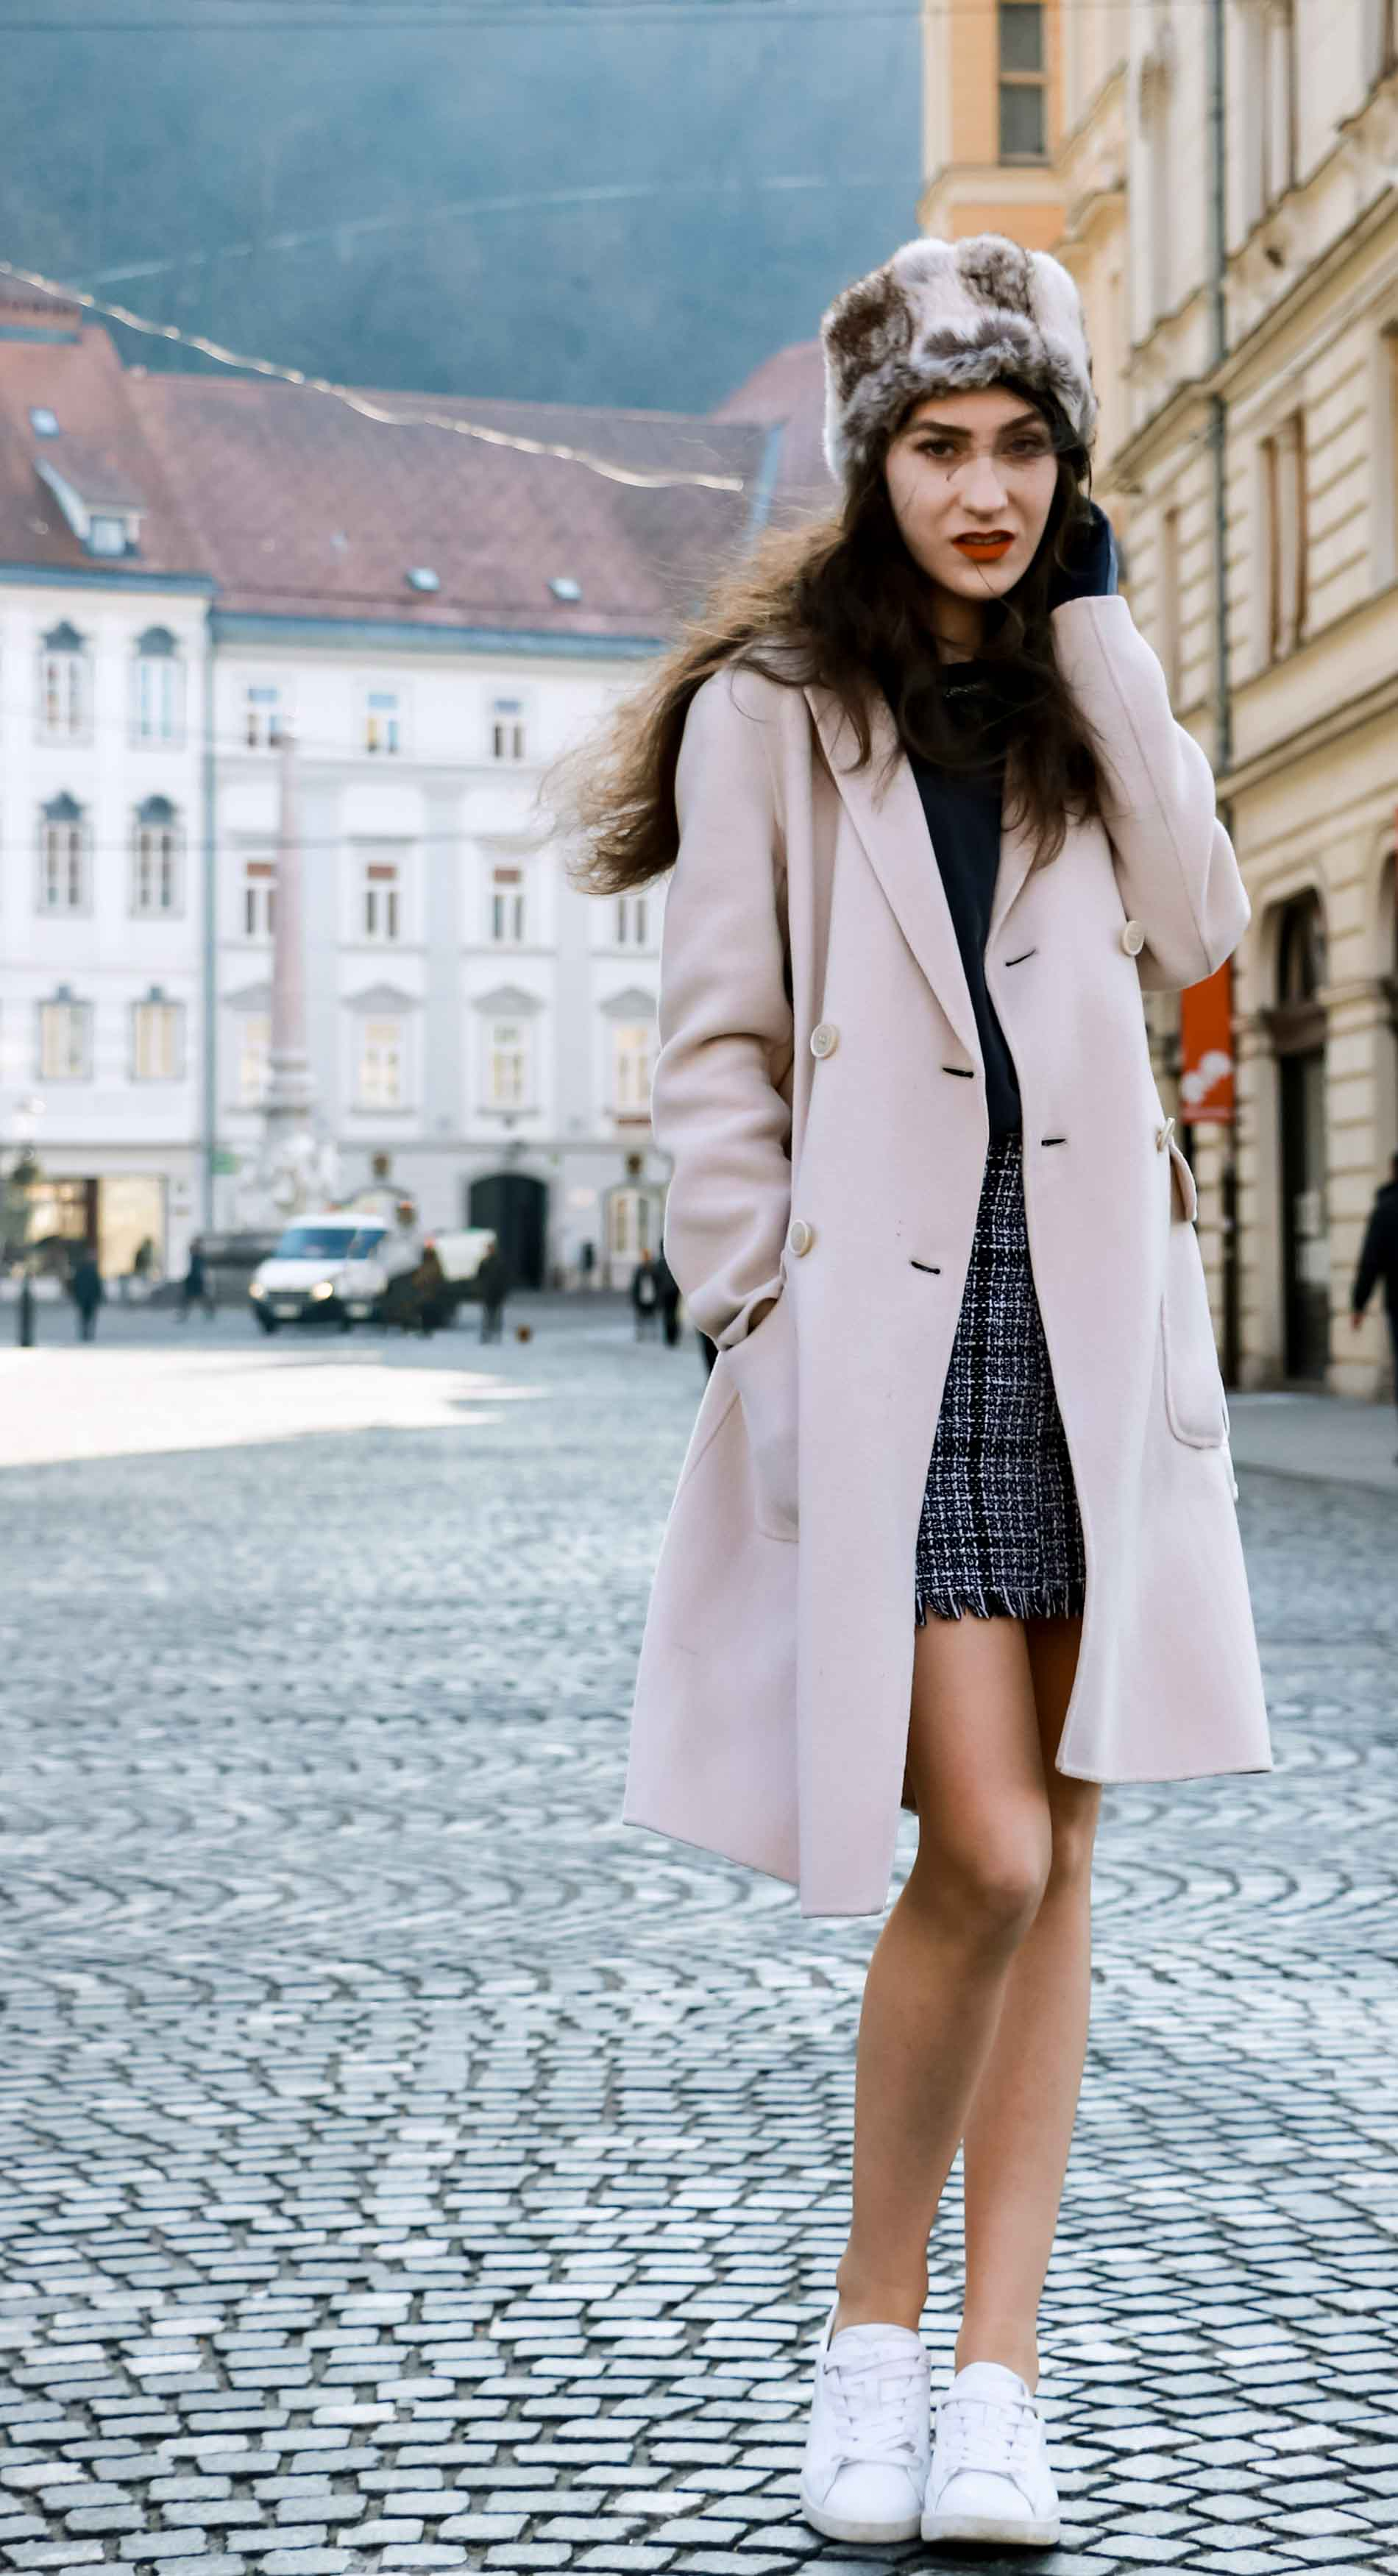 Fashion Blogger Veronika Lipar of Brunette from Wall Street wearing white sneakers from Diesel, black and white plaid tweed mini skirt from Storets, black silk blouse from Juicy Couture, off-white double breasted wool coat from MaxMara, faux fur headband, chain strap shoulder white bag, blue leather gloves on the street in Ljubljana